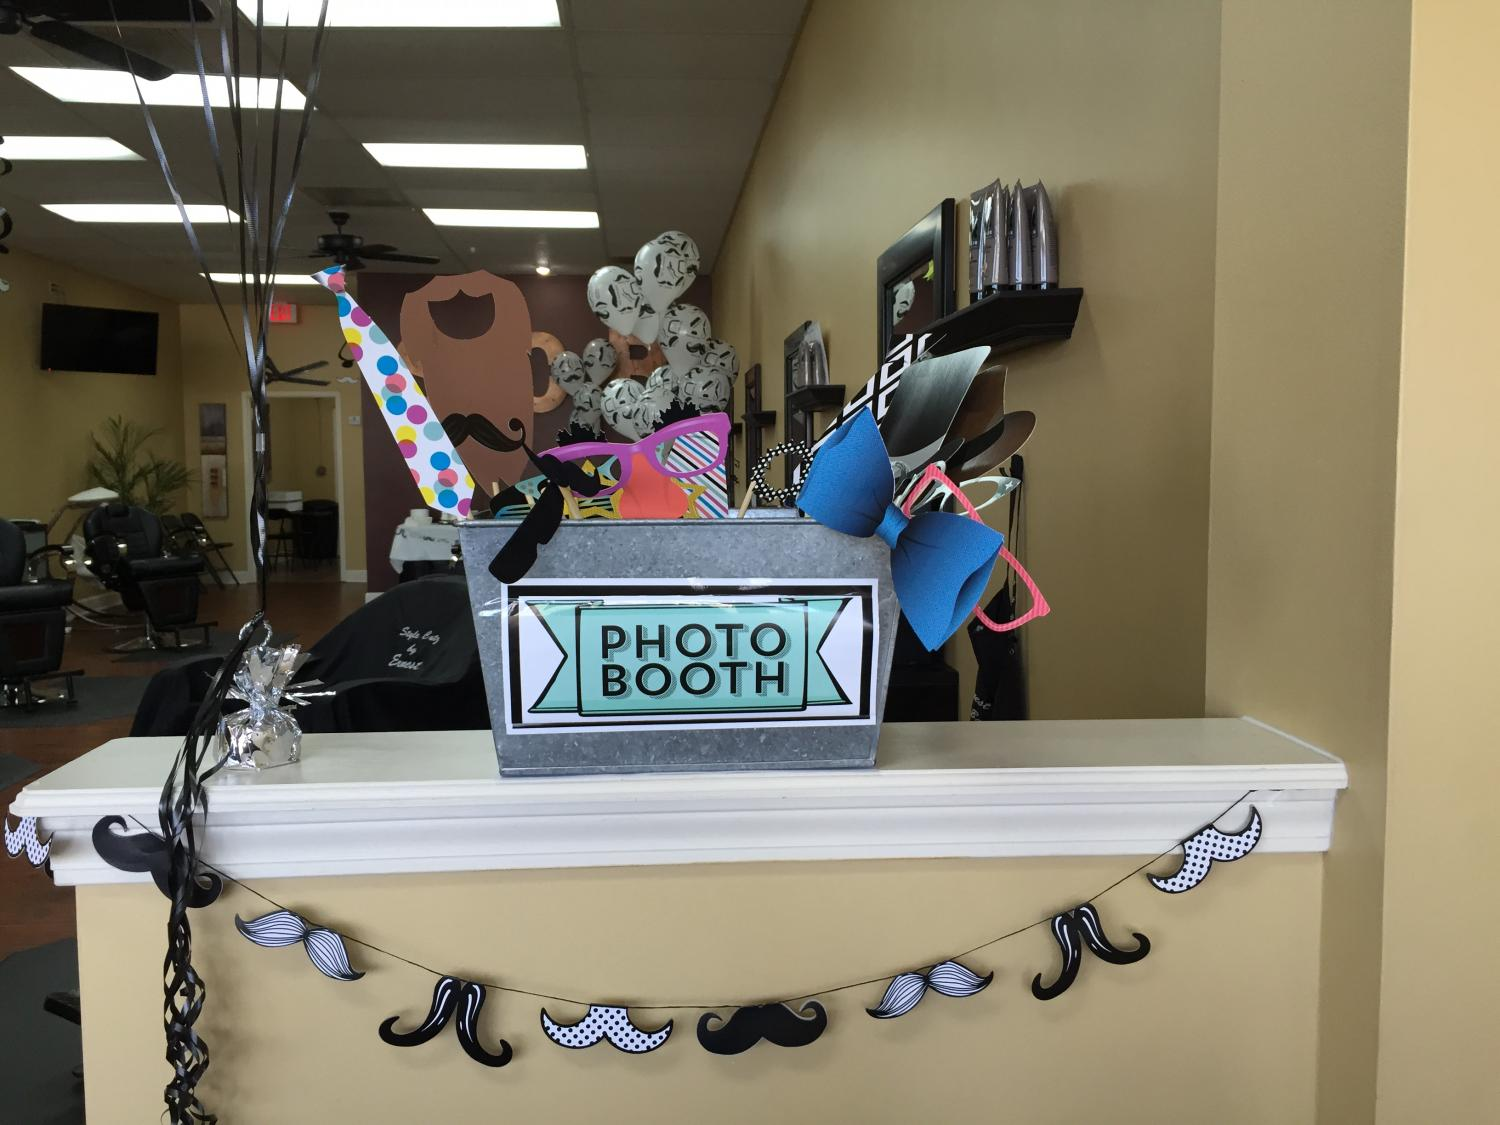 Photo Booth for the Kiddos